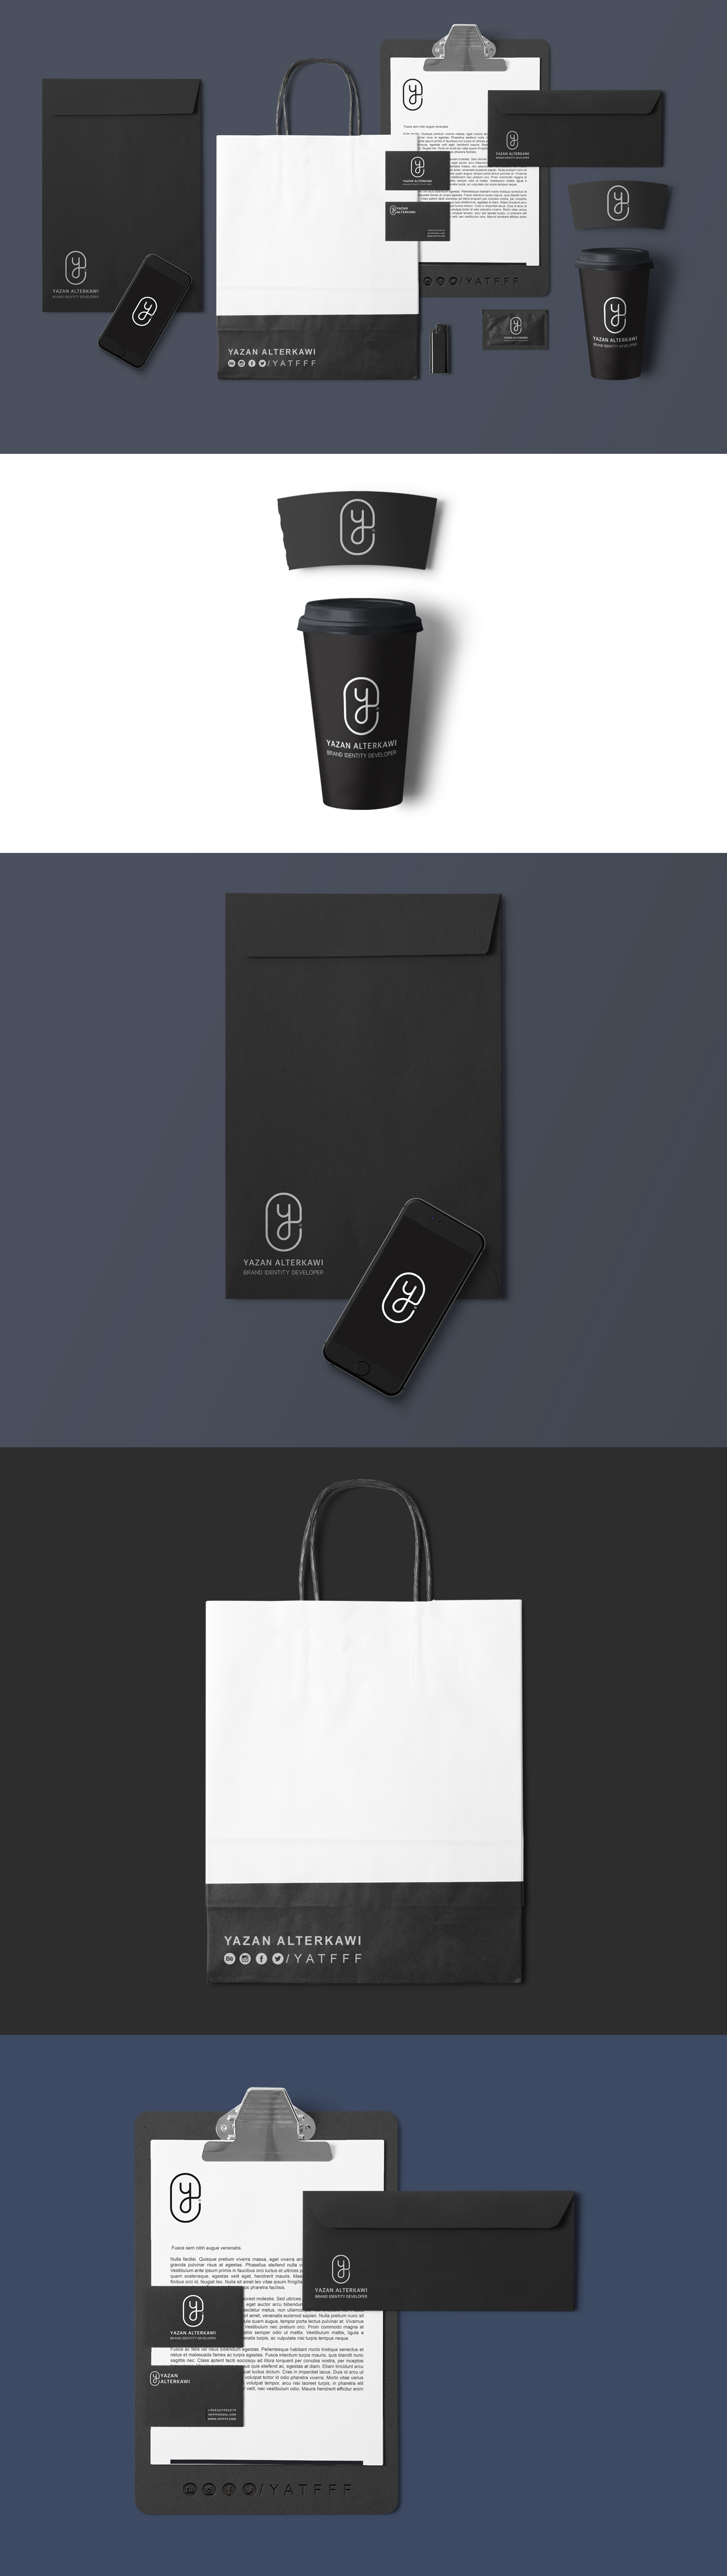 Stationery Branding Black Mockup PSD